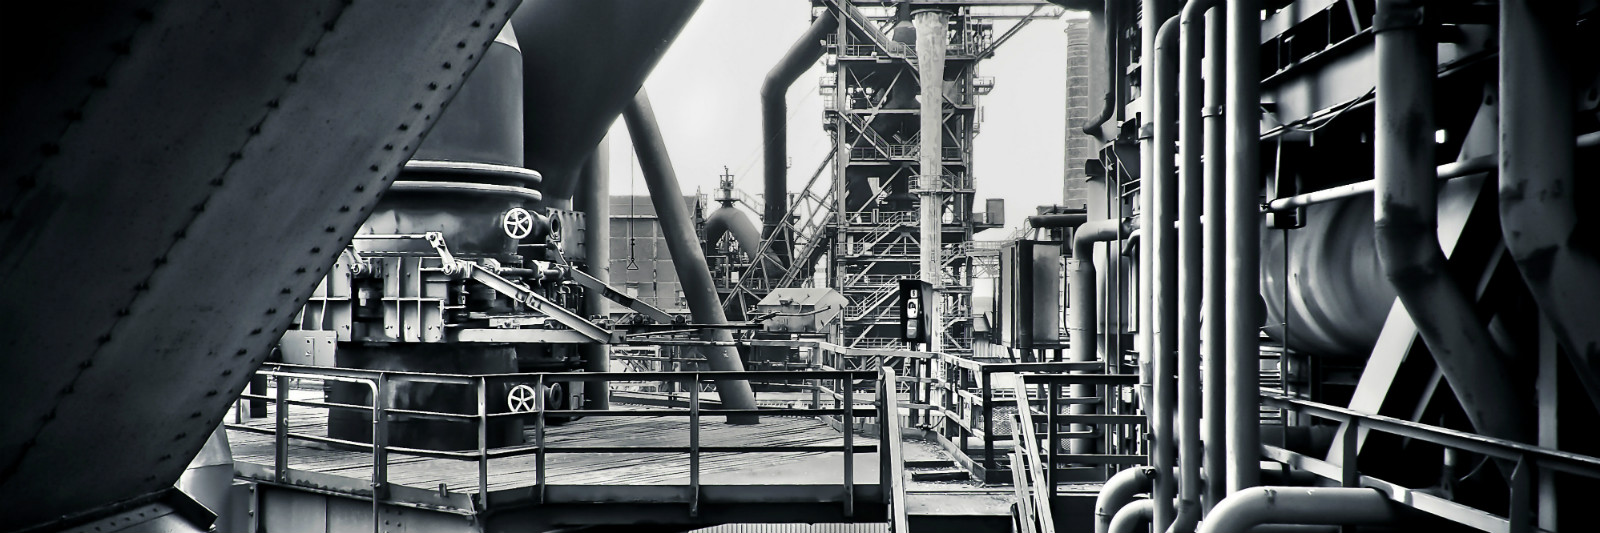 black and white factory pipes